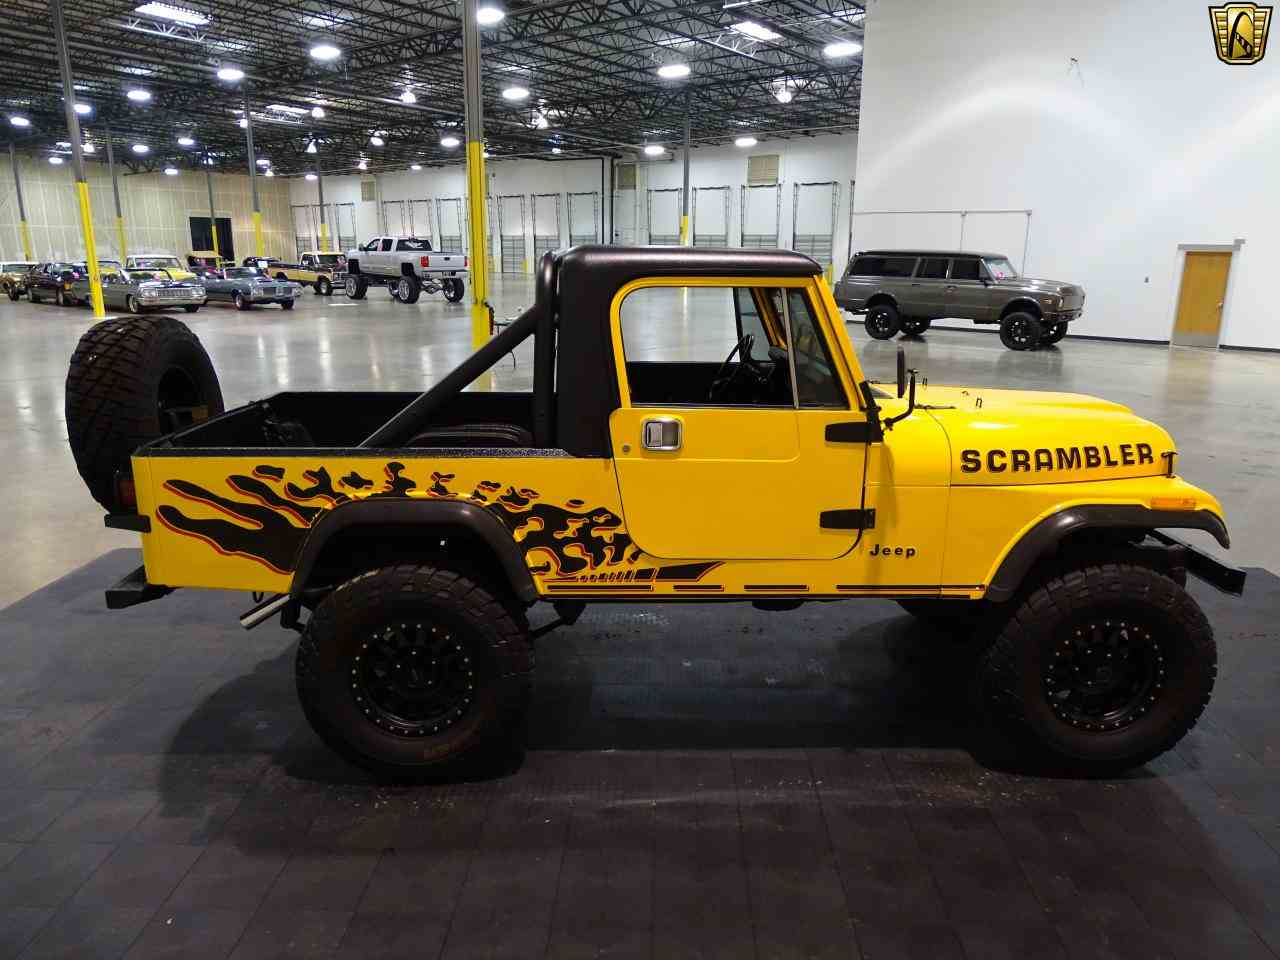 Large Picture of '85 Jeep CJ8 Scrambler located in Houston Texas Offered by Gateway Classic Cars - Houston - KEST